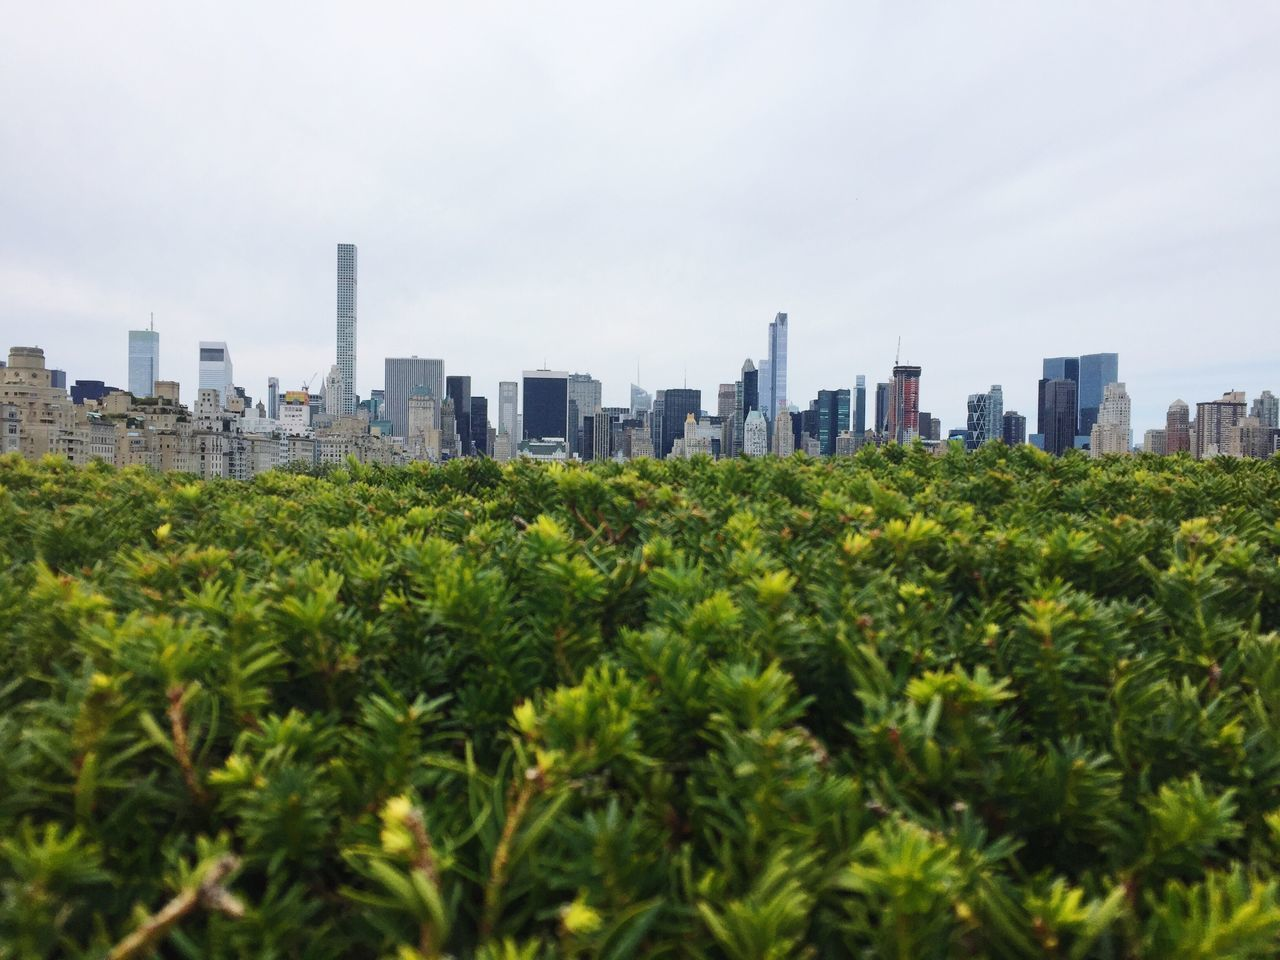 Adapted to the City NYC New York City skyscraper Skyline Green Plants City building exterior Architecture City Cityscape urban skyline outdoors Green color no people Growth Tree built structure Modern sky day Nature